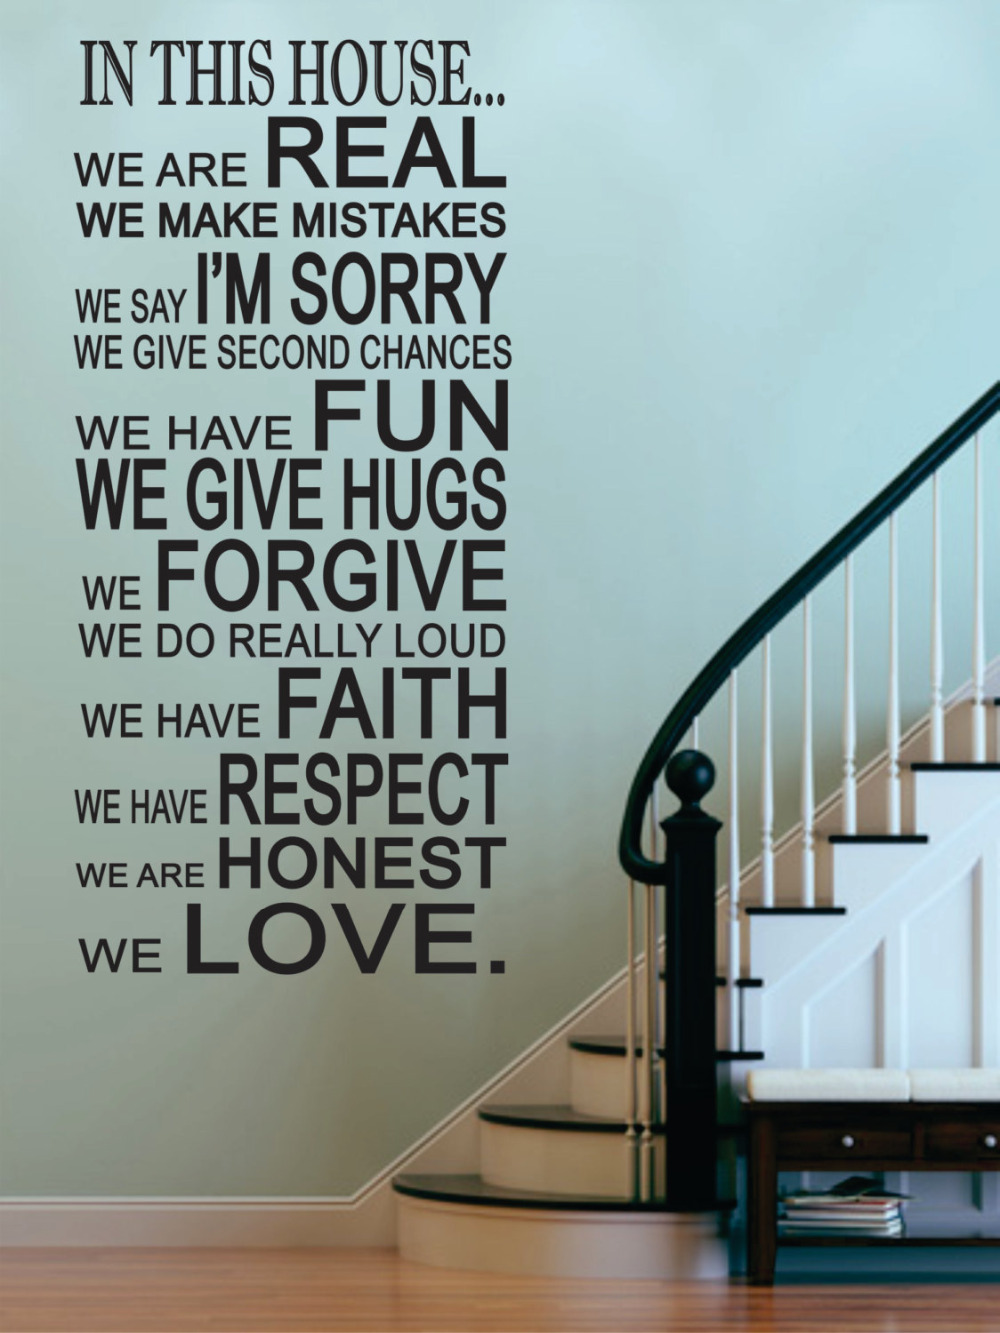 Removable vinyl wall sticker in this house house rules decals removable vinyl wall sticker in this house house rules decals living room kitchen entry rec room photo wall decoration za606 in wall stickers from home amipublicfo Choice Image